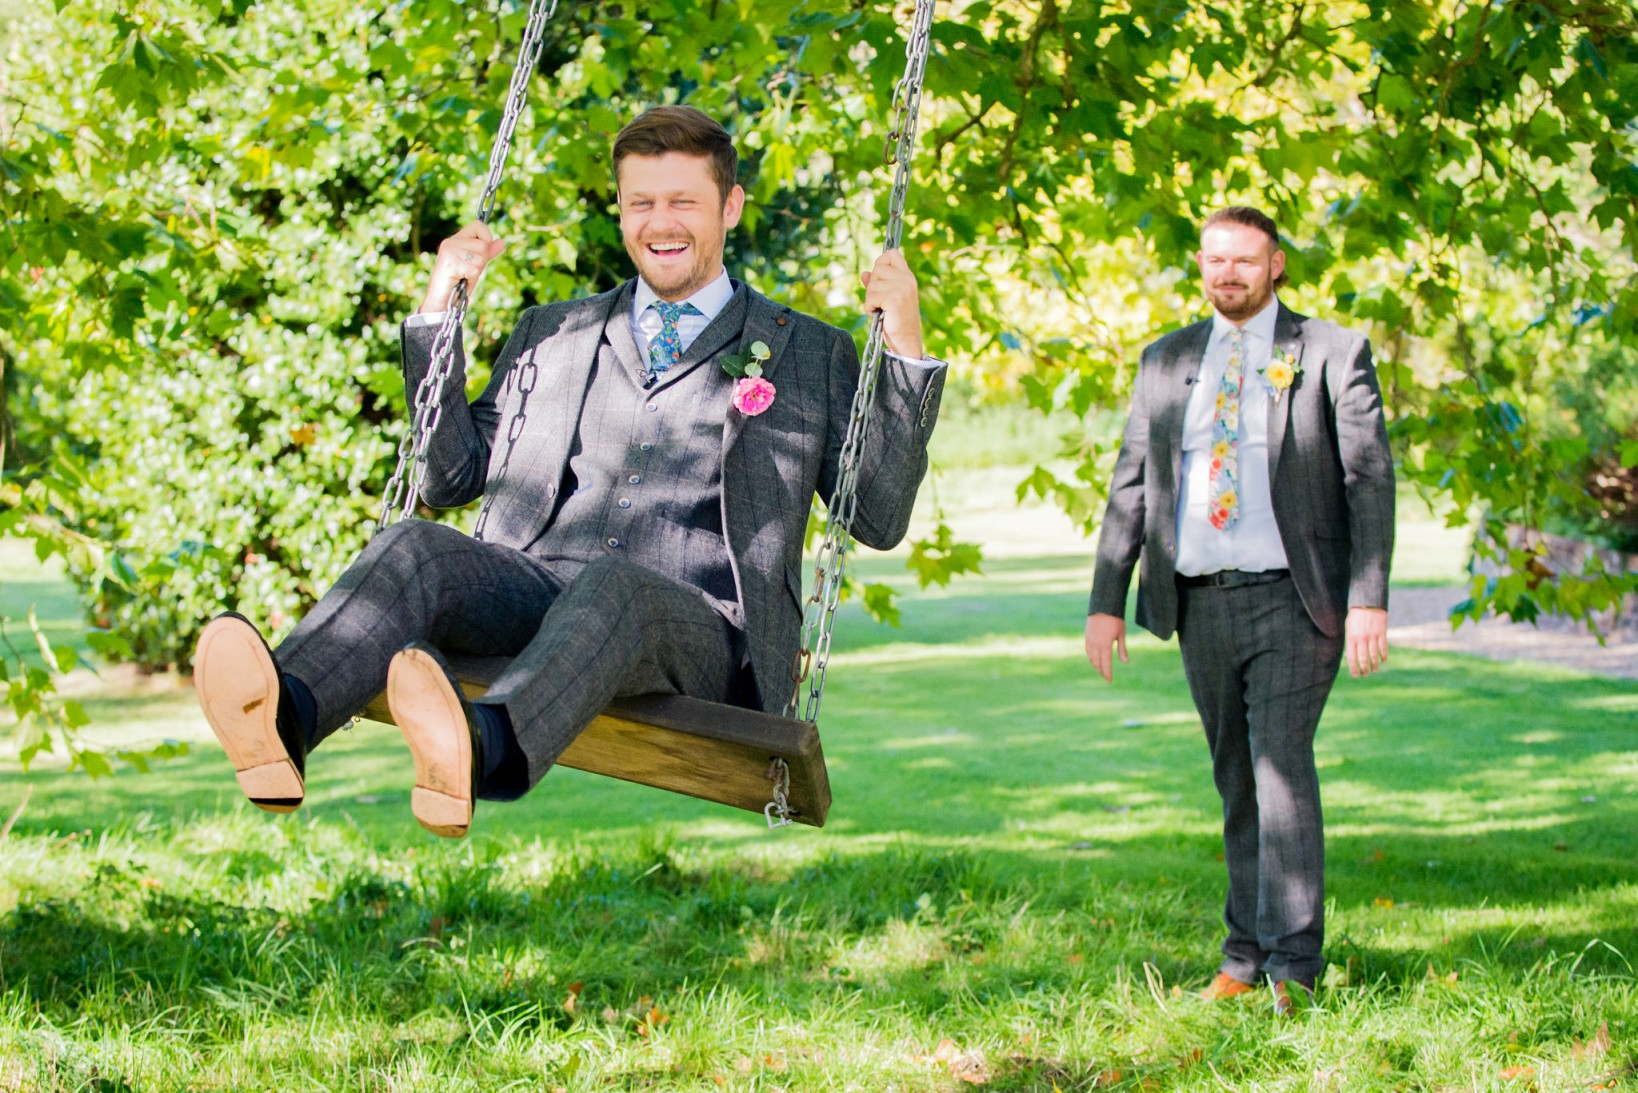 Chantelle Goble Photography - Rainbow wedding - same sex wedding - engagement photoshoot advice - alternative wedding 4 (2)